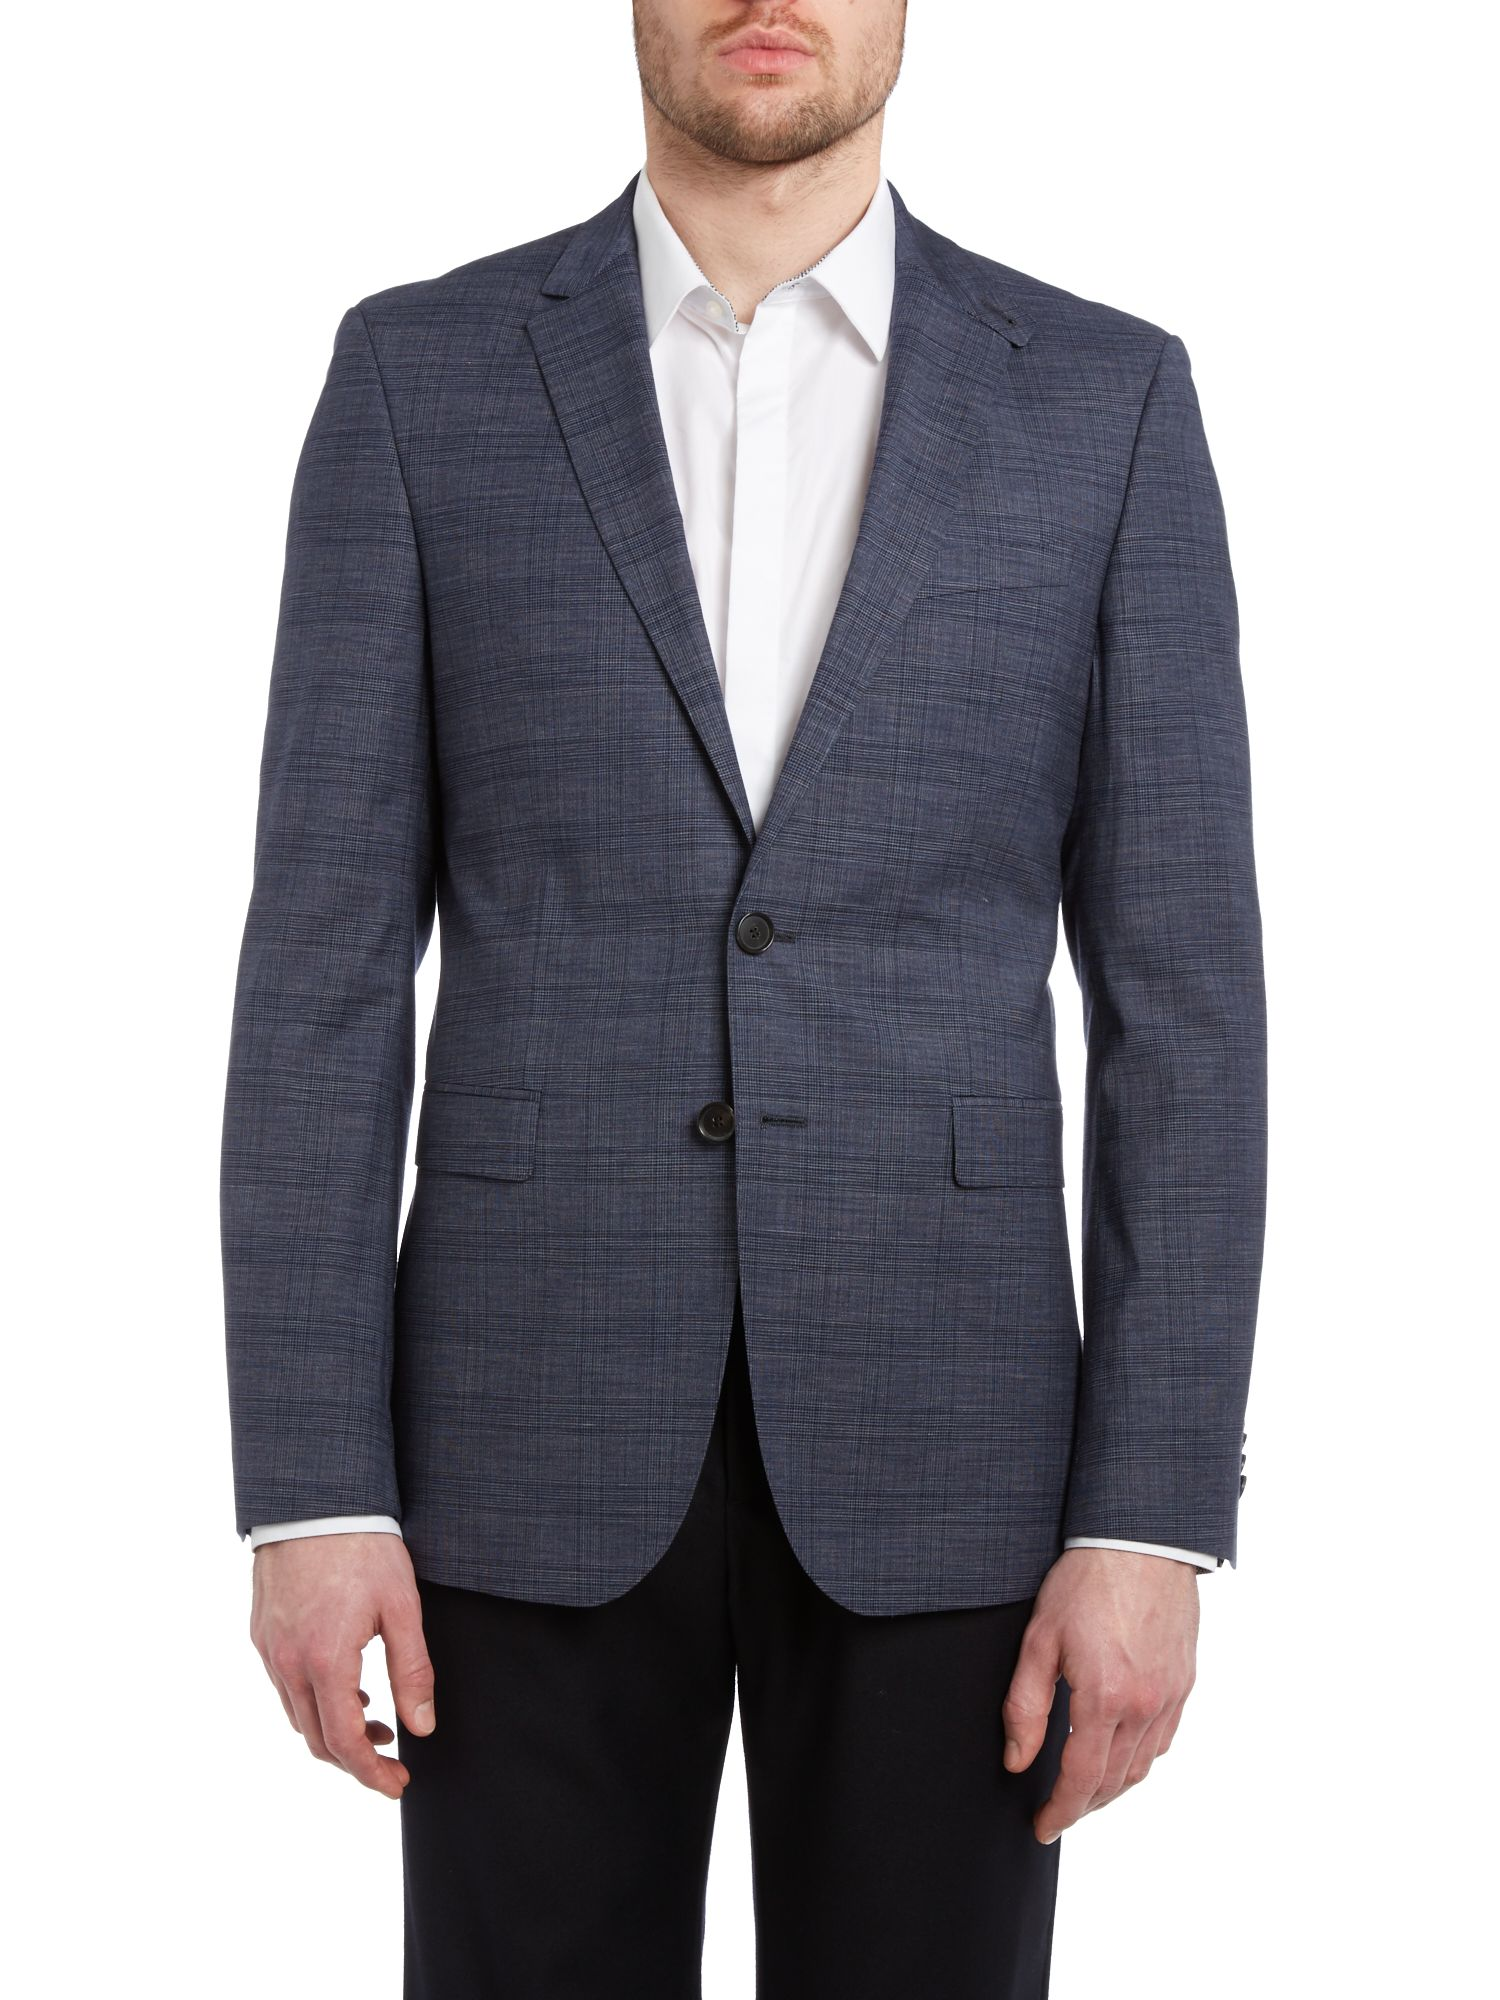 Rhett extra slim Prince of Wales check jacket